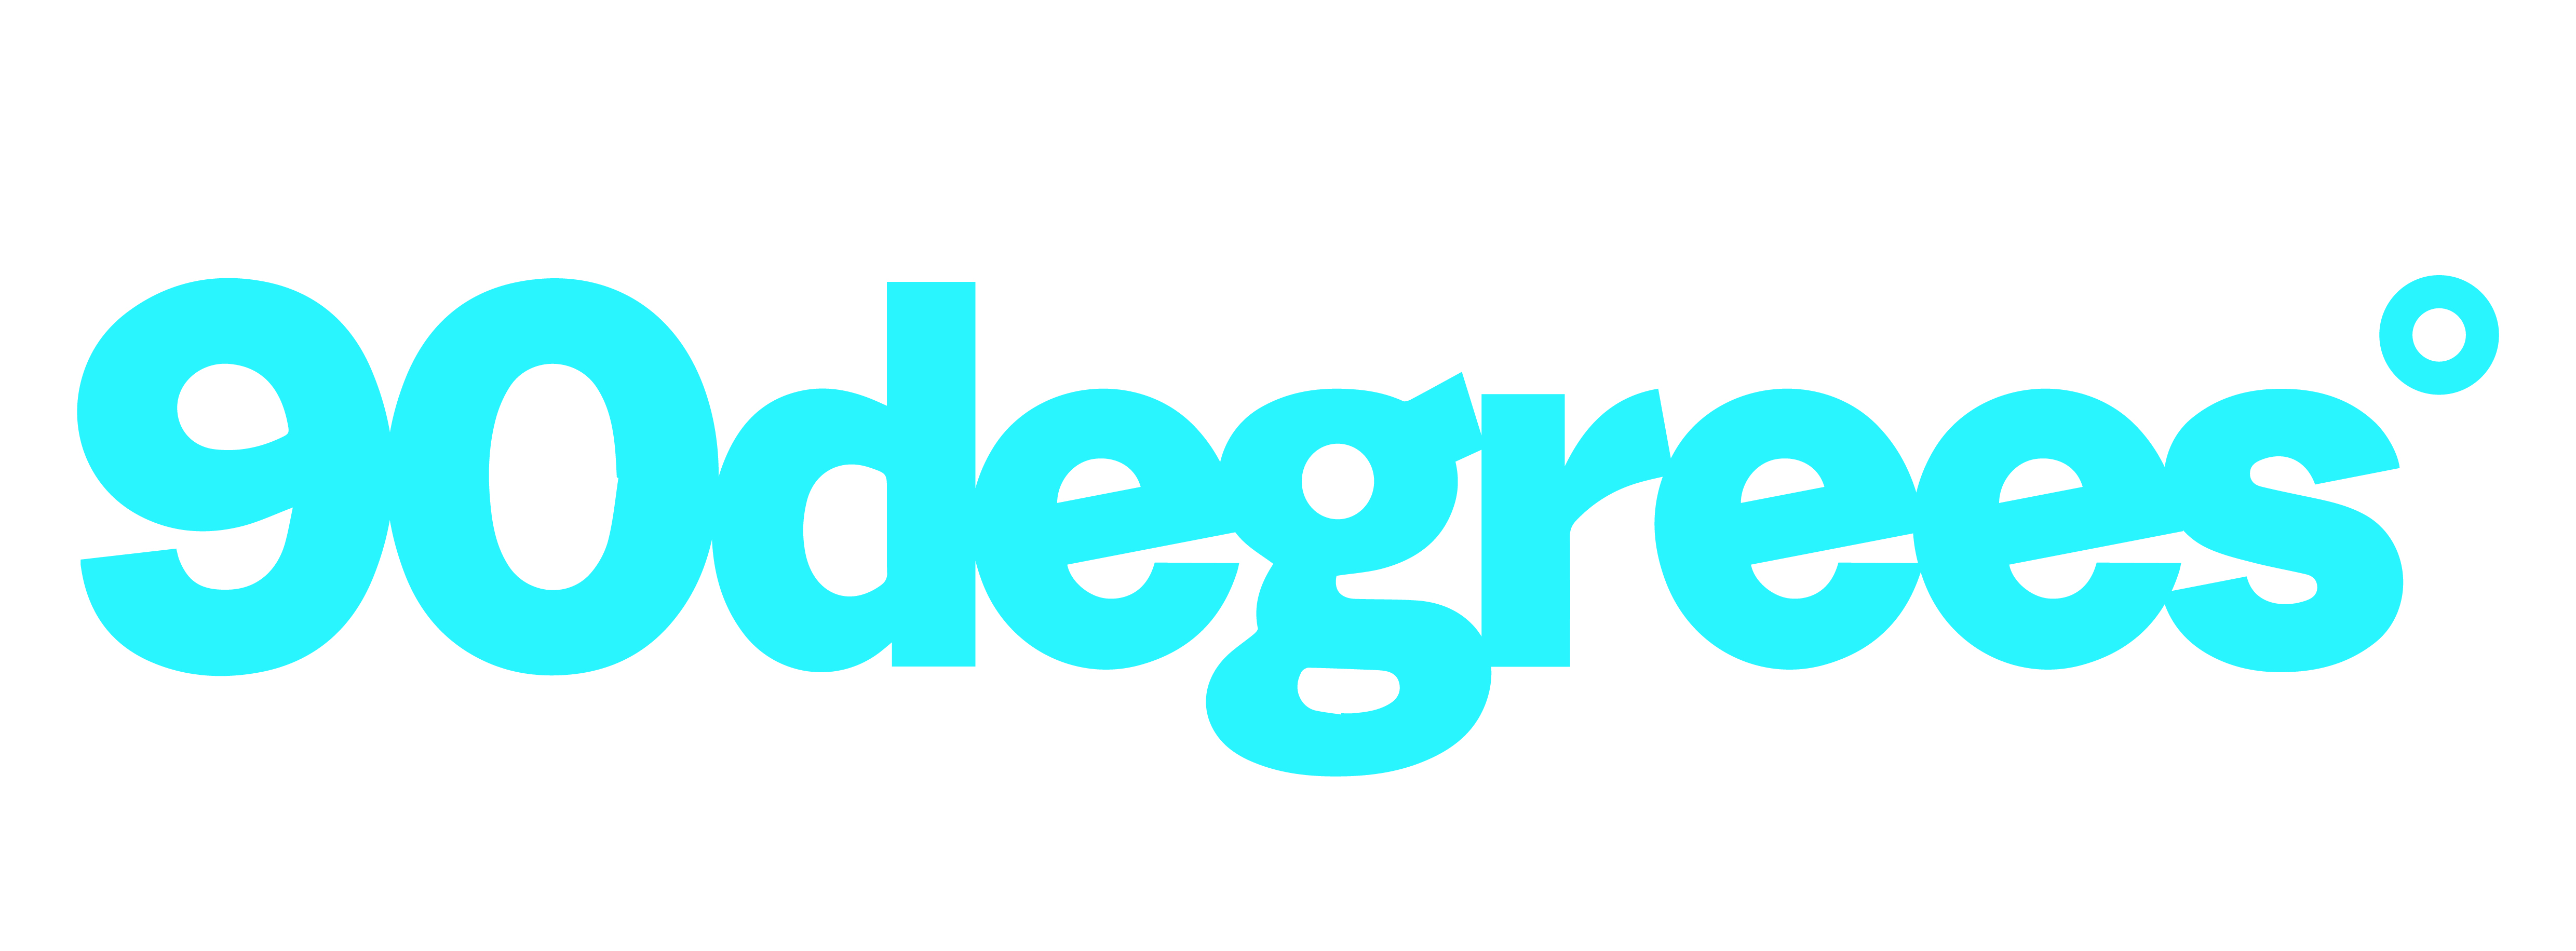 90 degrees logo